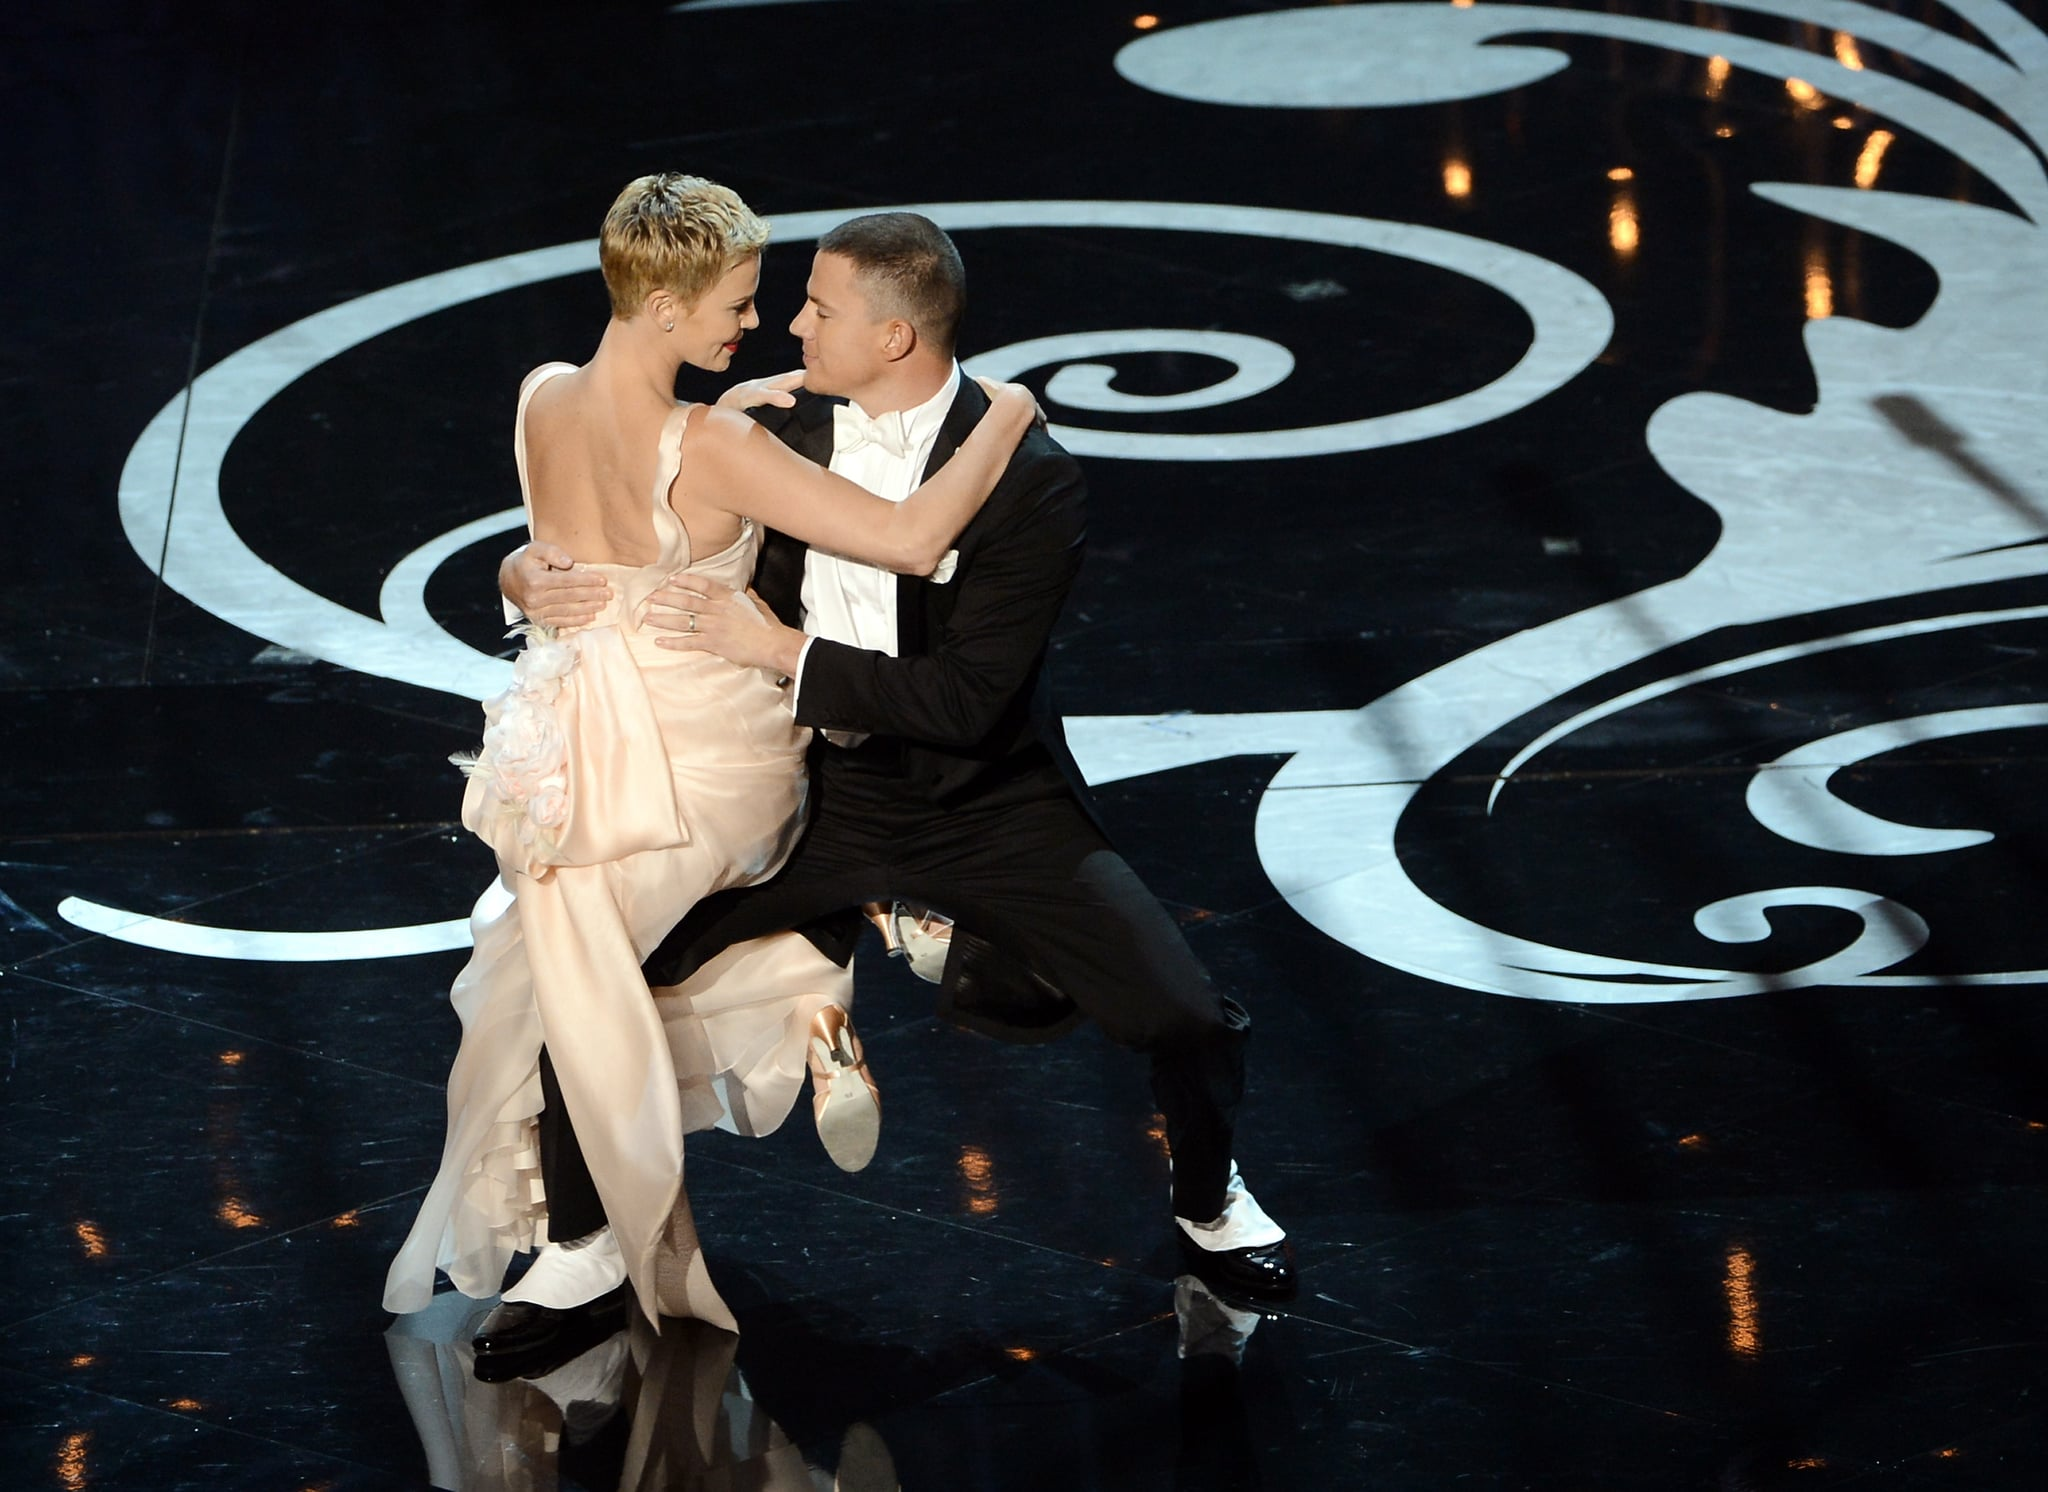 Charlize Theron and Channing Tatum shared a romantic dance on stage during the show.